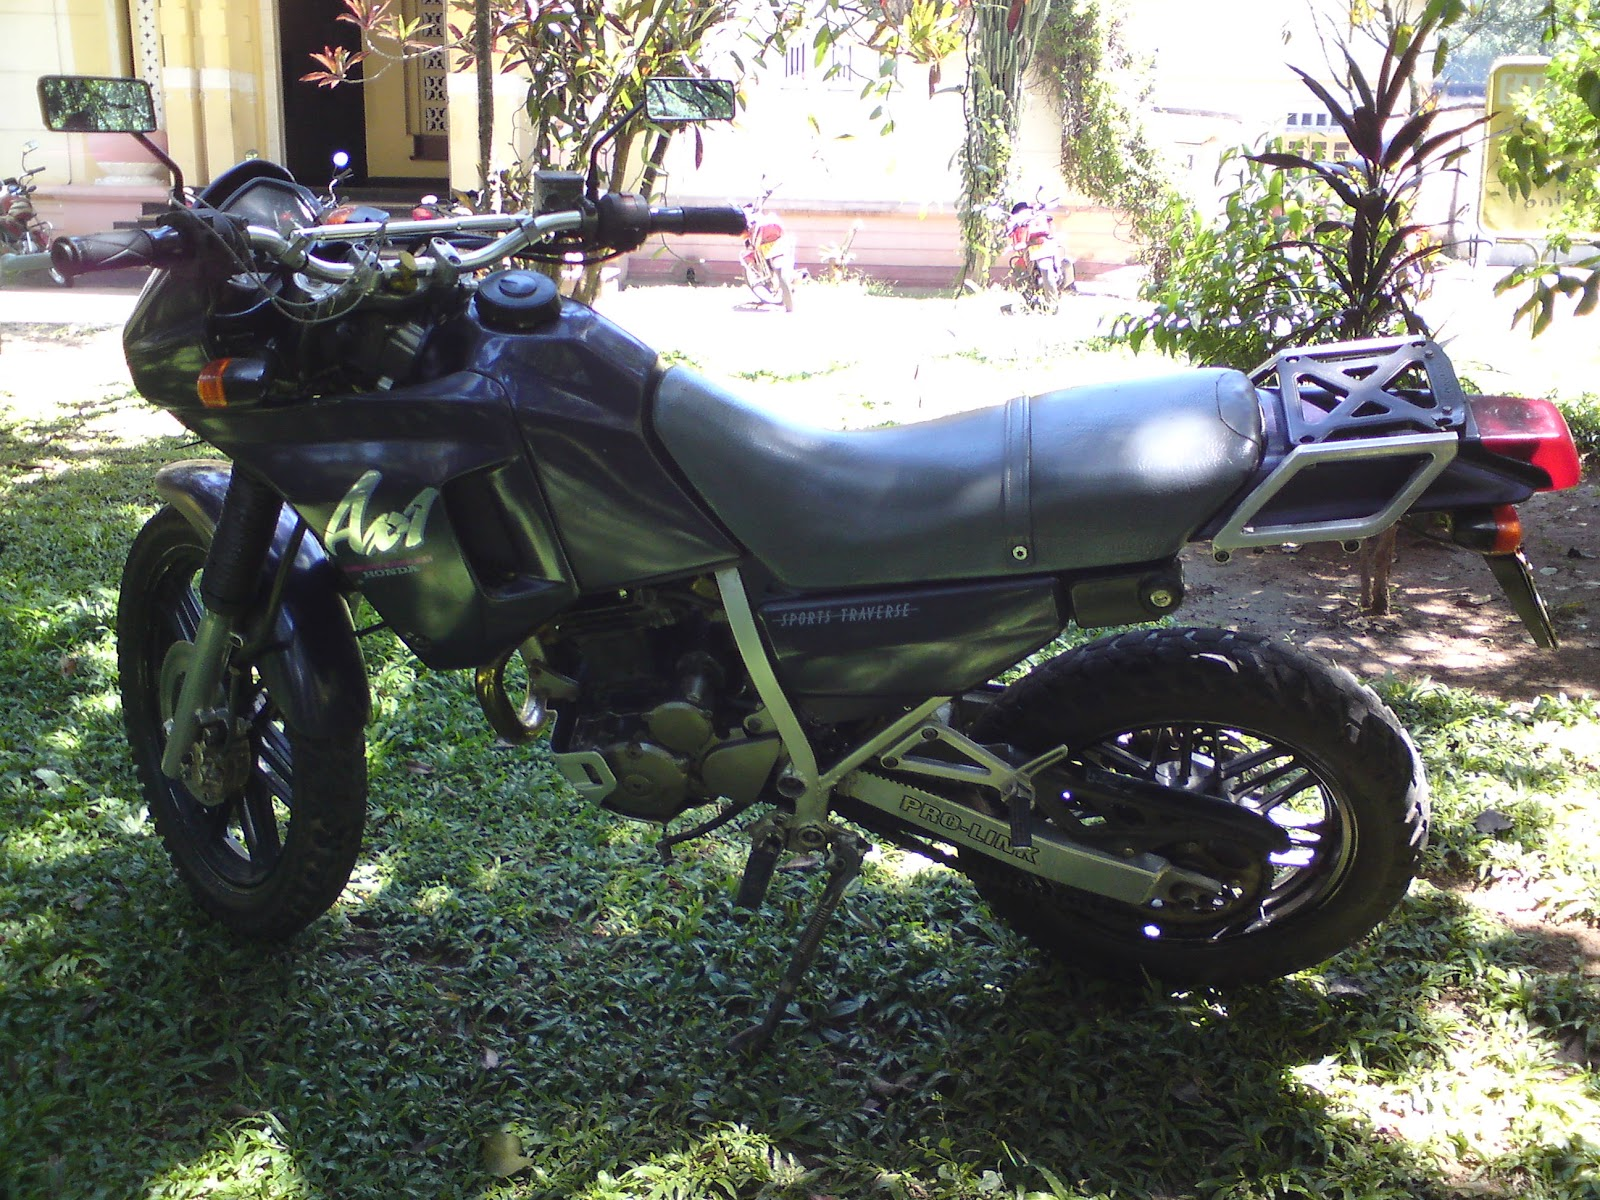 Ikman lk bikes for sale - Sale For Money Argent Bike In Excellent Condition Best Fuel Economy 35 40km L Call 0718451037 Sampath